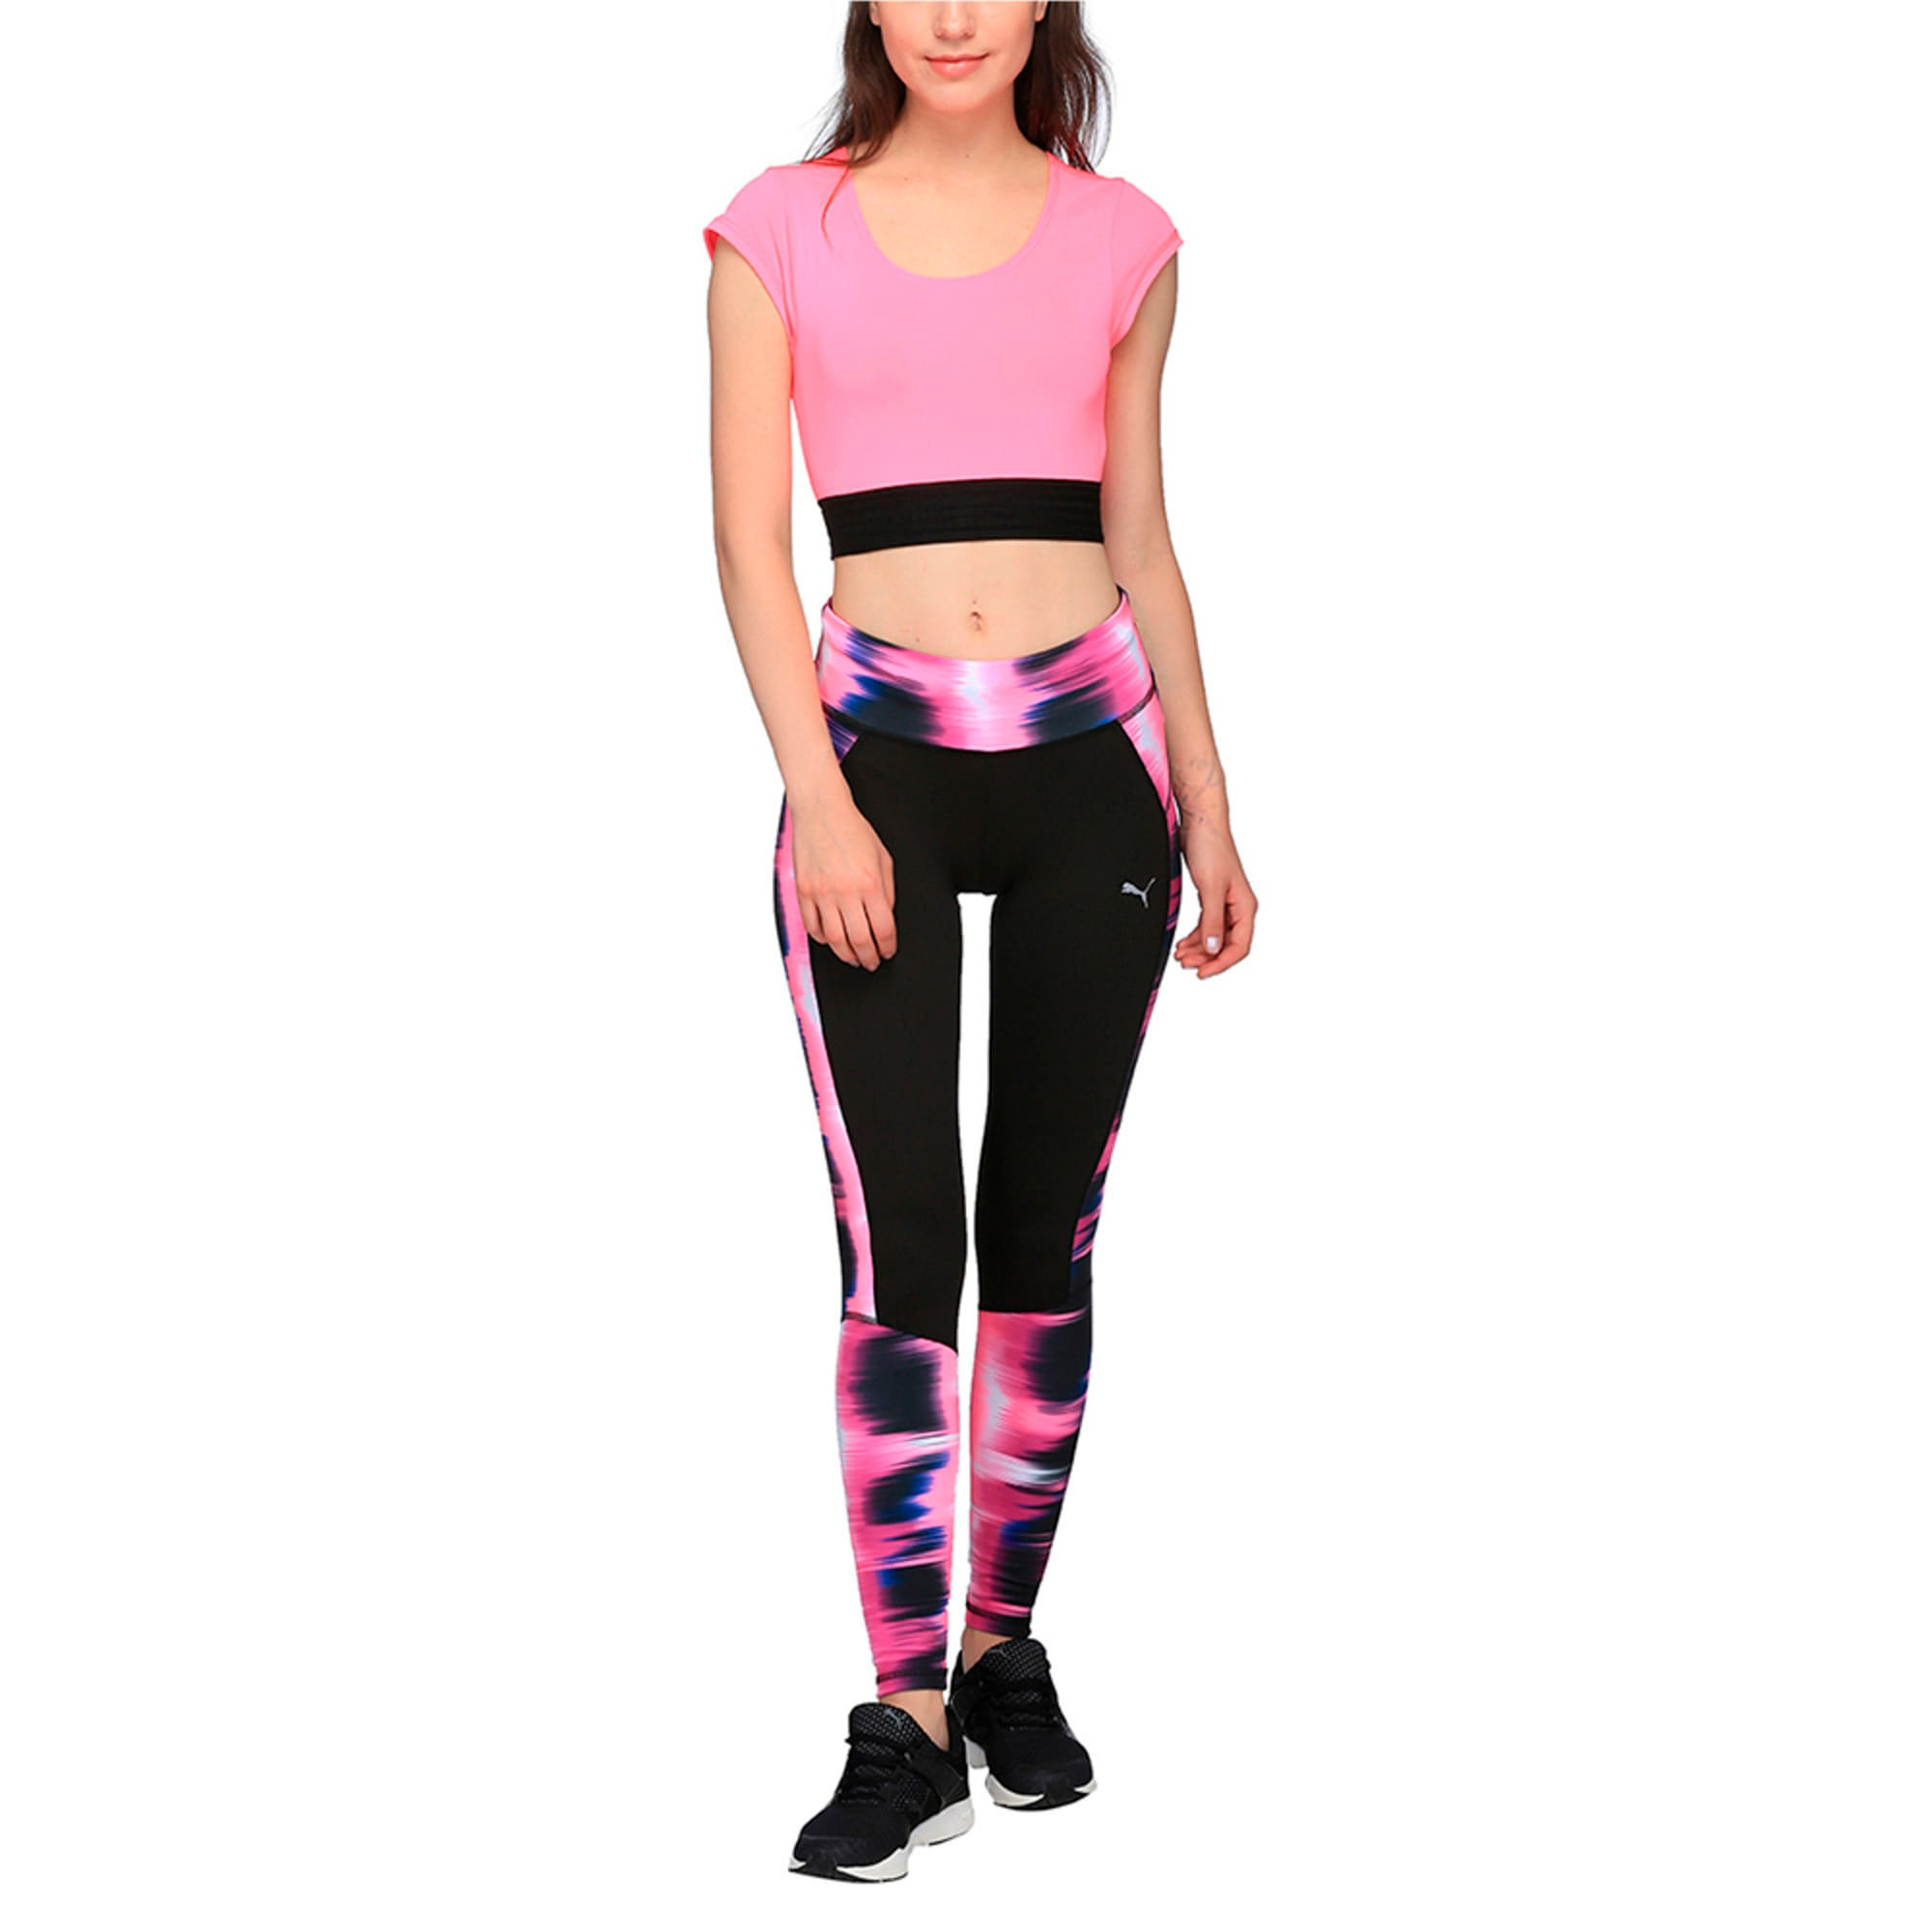 Thumbnail 2 of Active Training Women's Explosive Crop Top, KNOCKOUT PINK, medium-IND